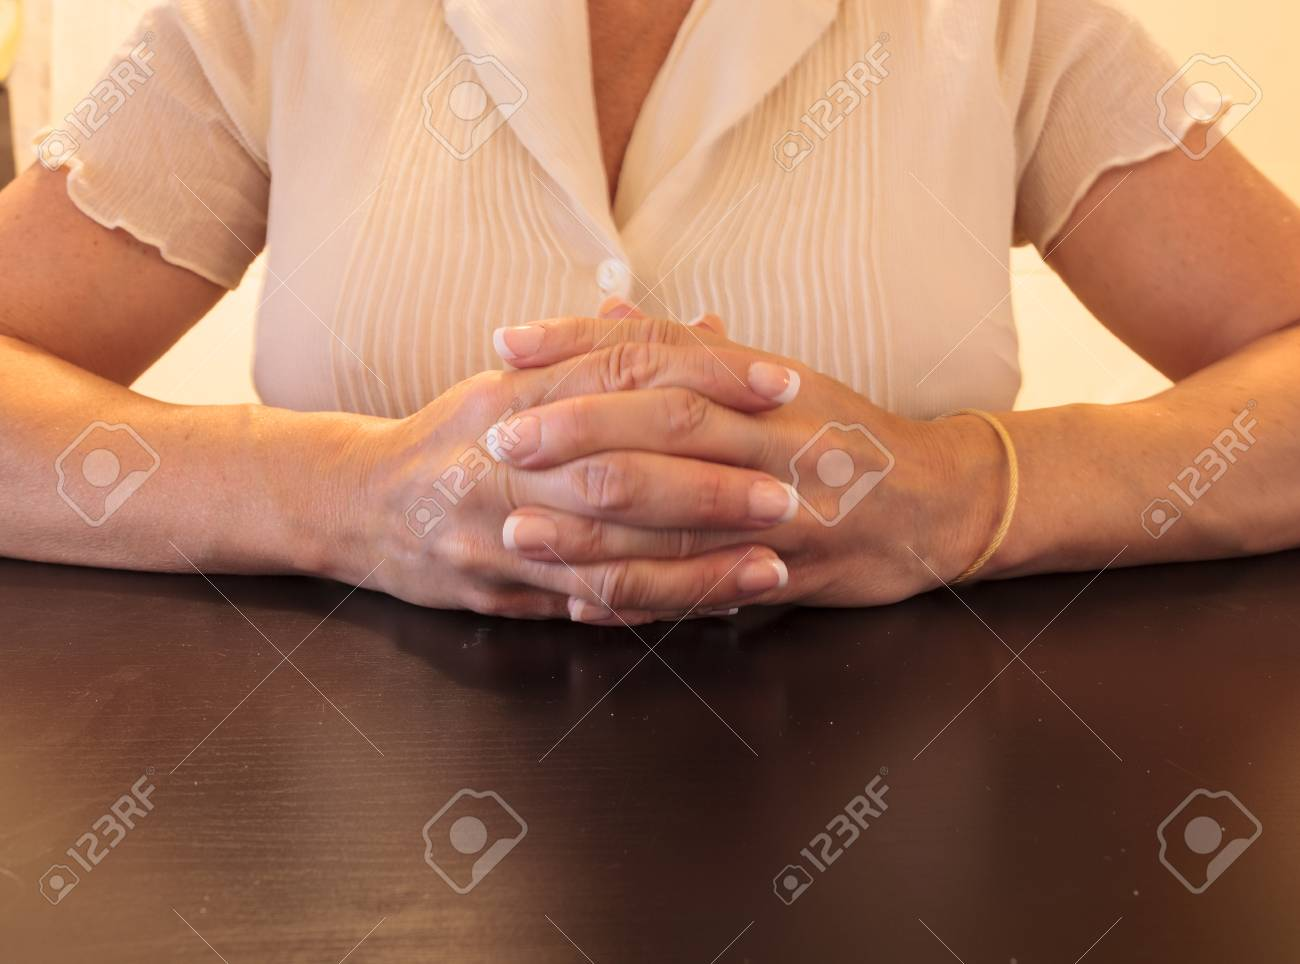 Female With Manicured Nails Clasping Hands At A Desk In An Office ...